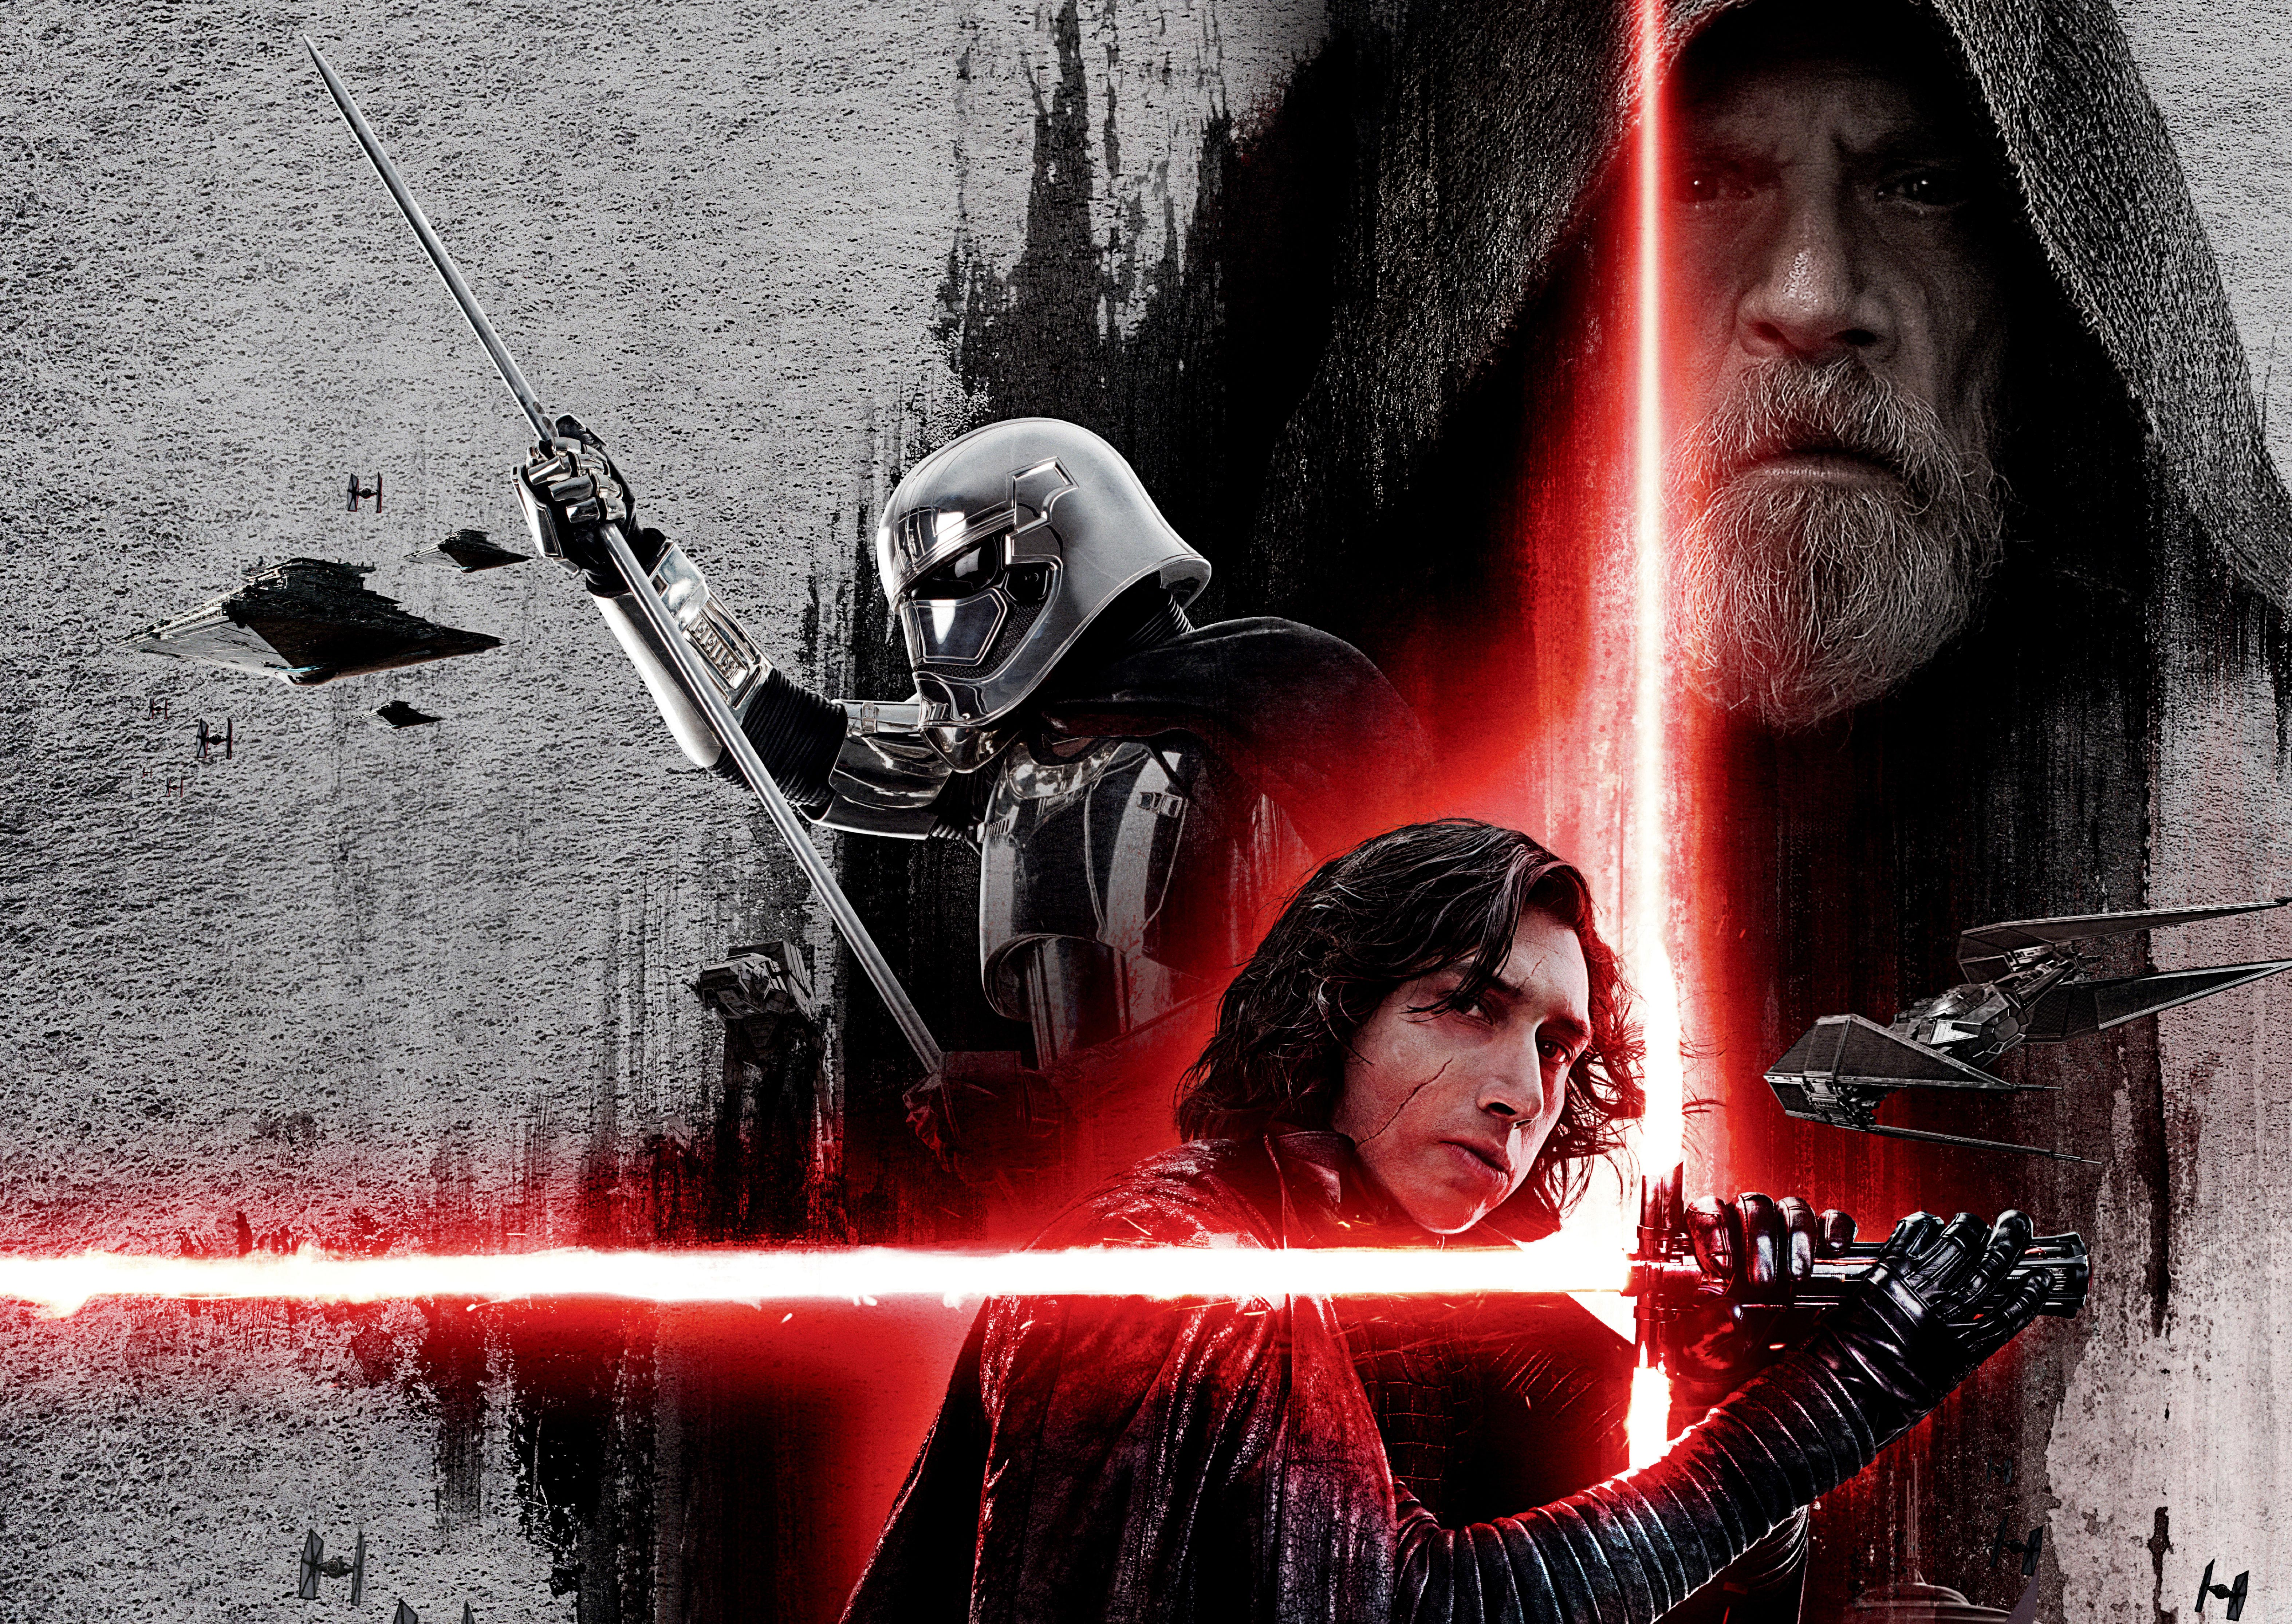 1920x1080 Star Wars The Last Jedi 2017 5k Laptop Full Hd 1080p Hd